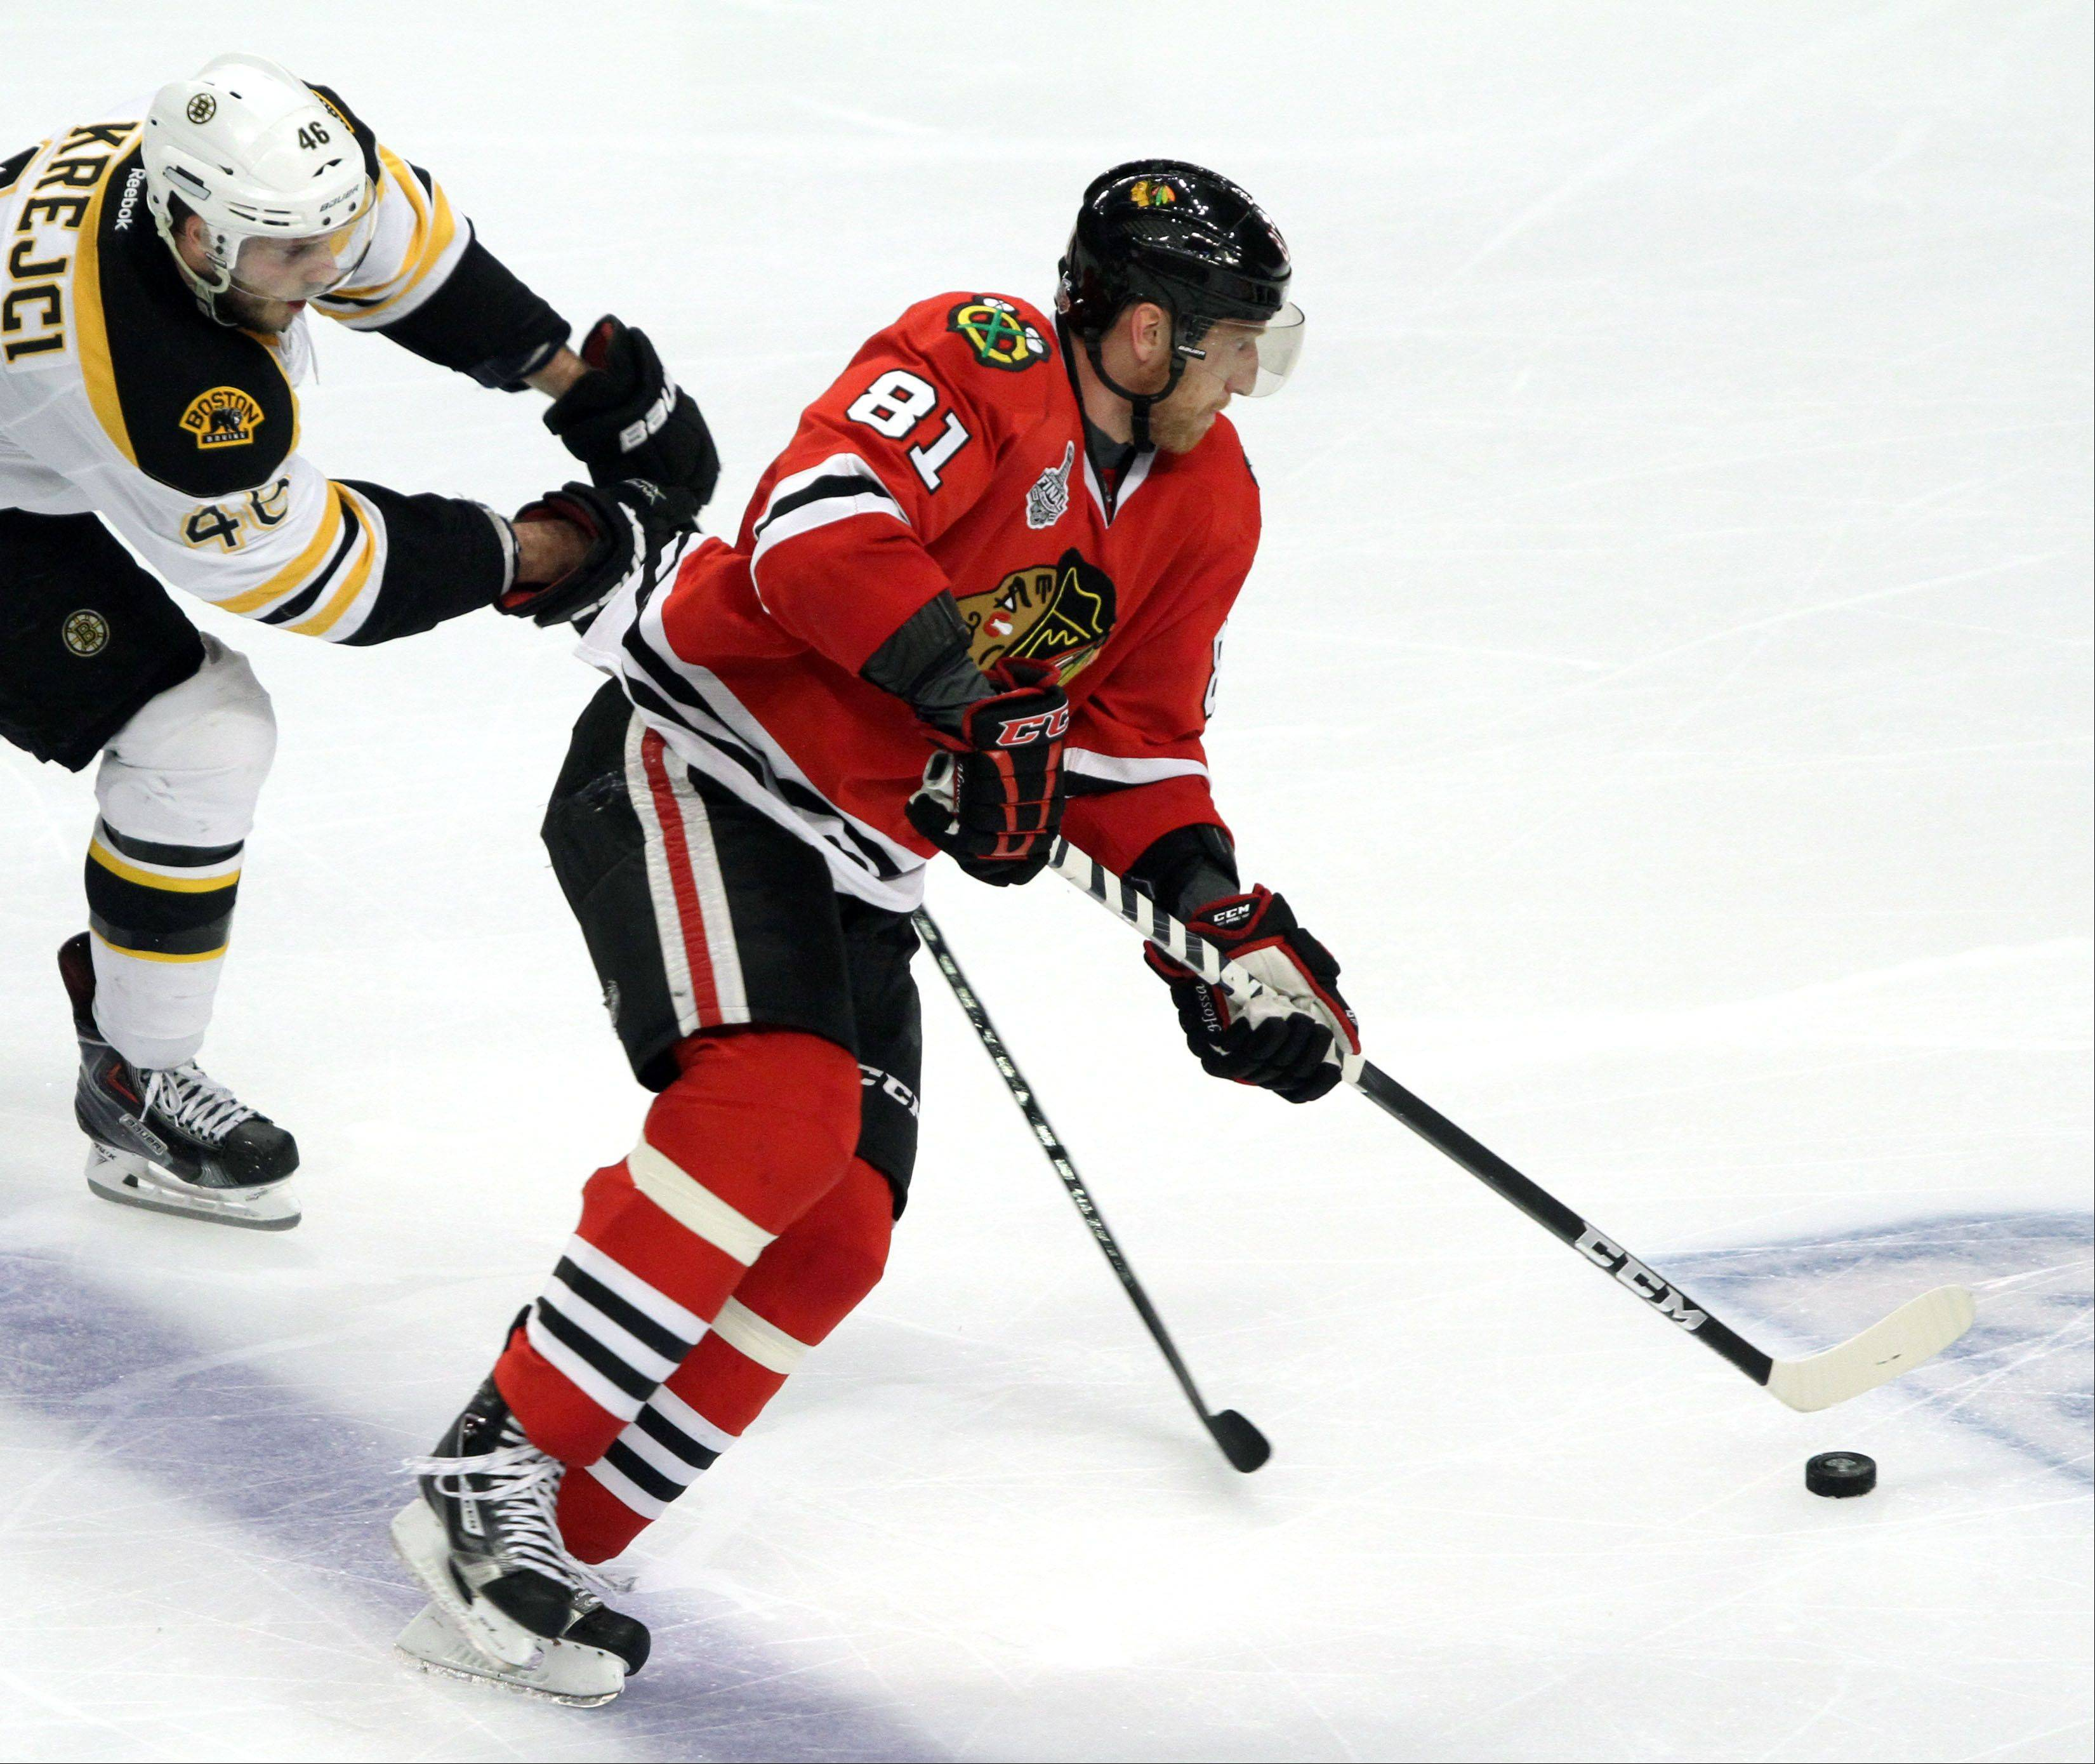 Blackhawks right wing Marian Hossa, here driving past Boston Bruins center David Krejci during Game 2 of the Stanley Cup Finals last Saturday, missed Game 3 on Monday due to an injury. He is expected to play in Game 4.